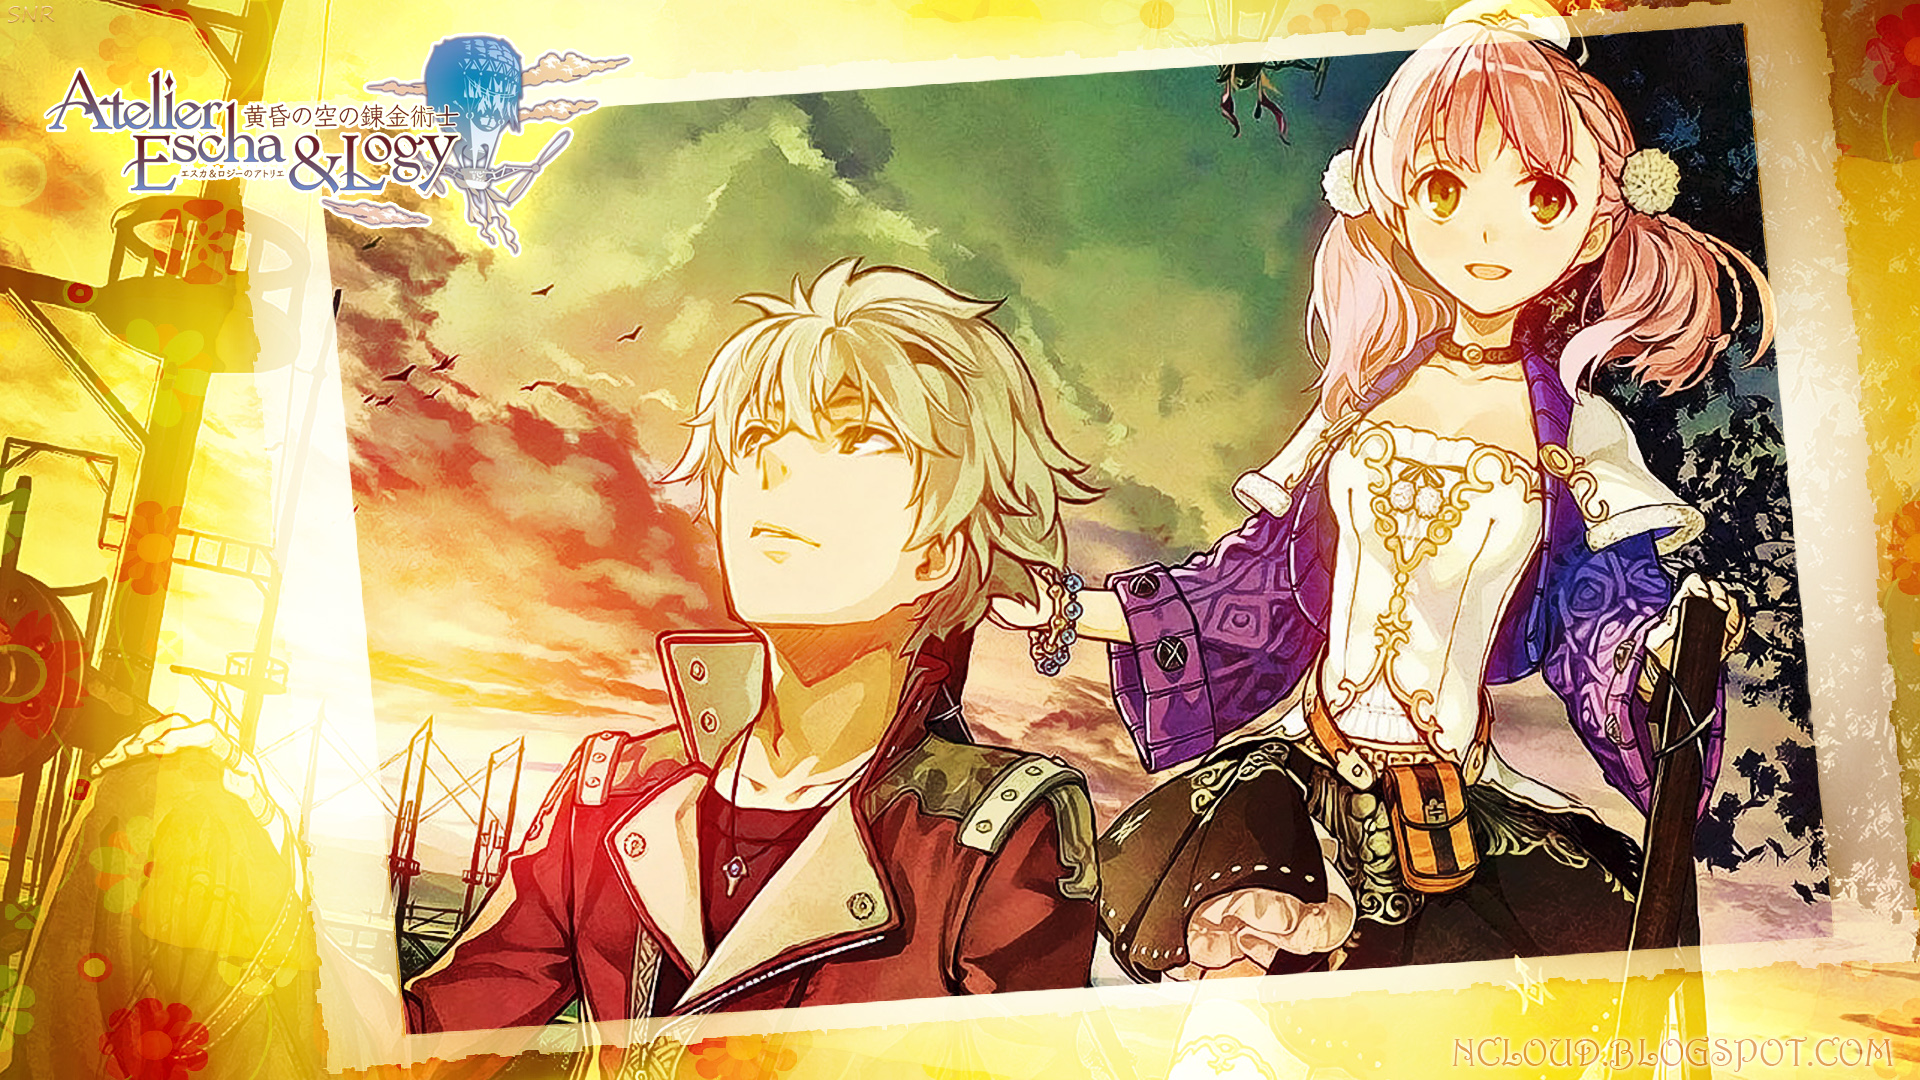 Games Movies Music Anime My Atelier Escha and Logy Wallpaper 1920x1080